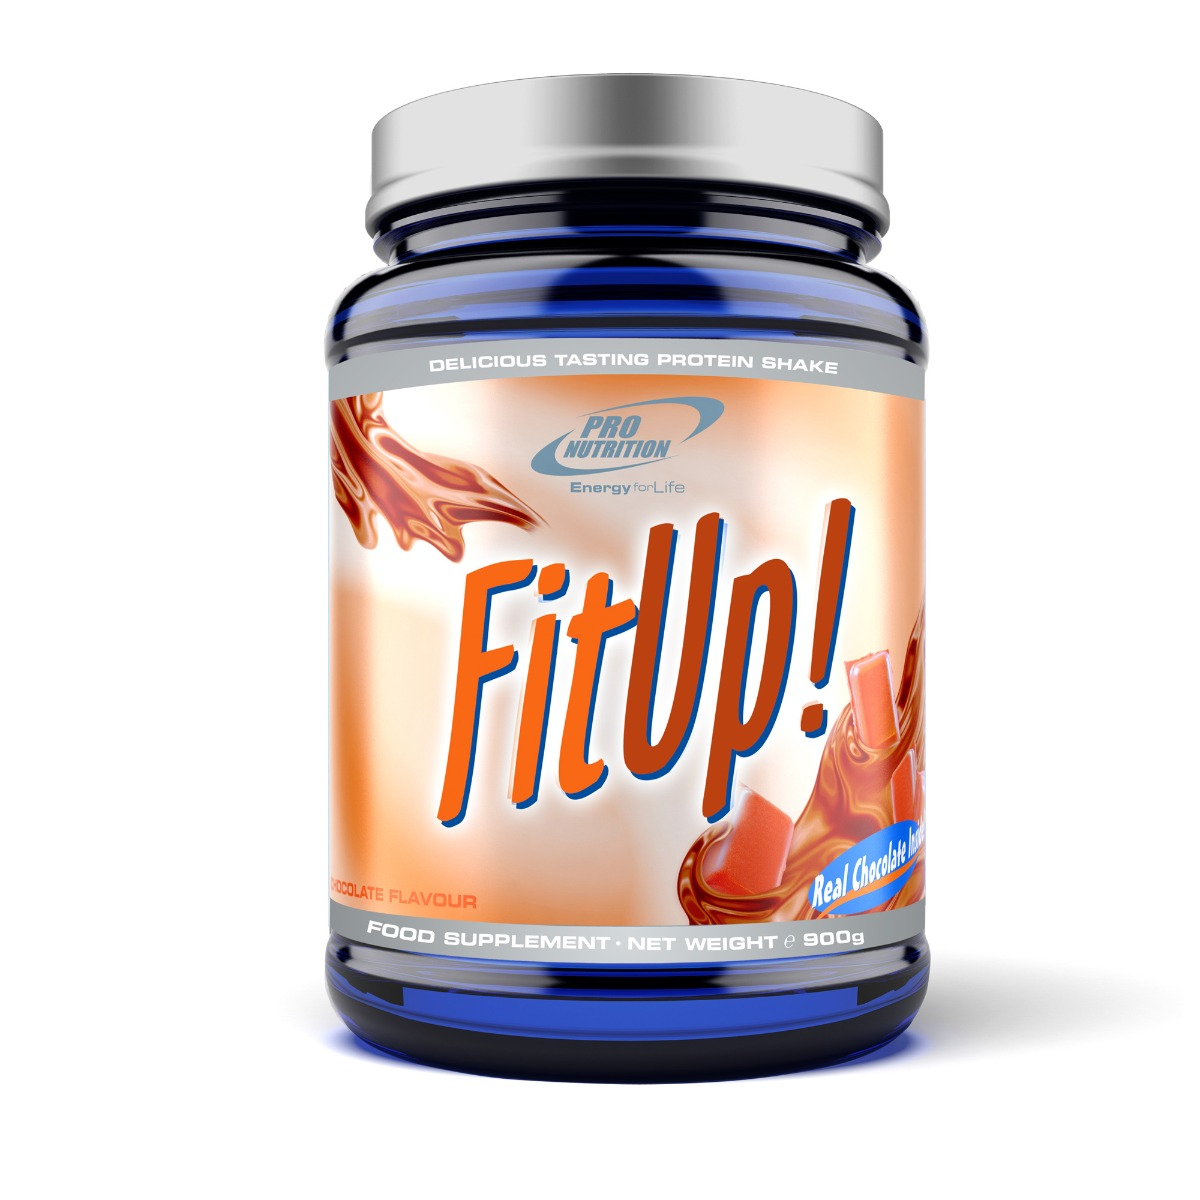 Pronutrition FitUp!